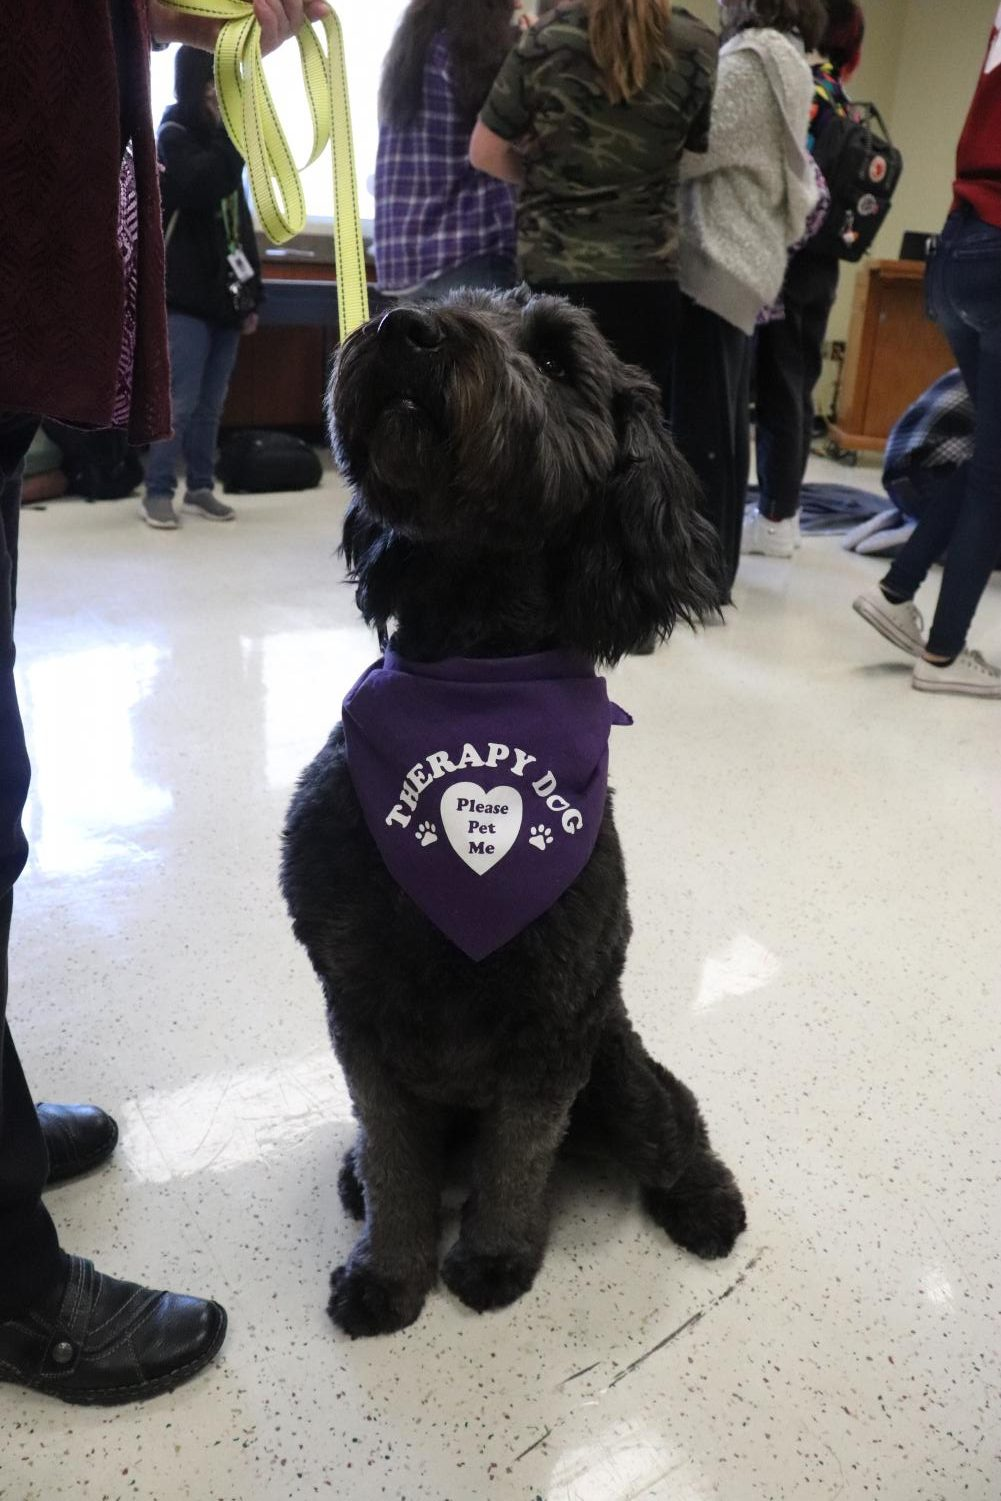 A Therapy dog sits and waits patiently to be pet.